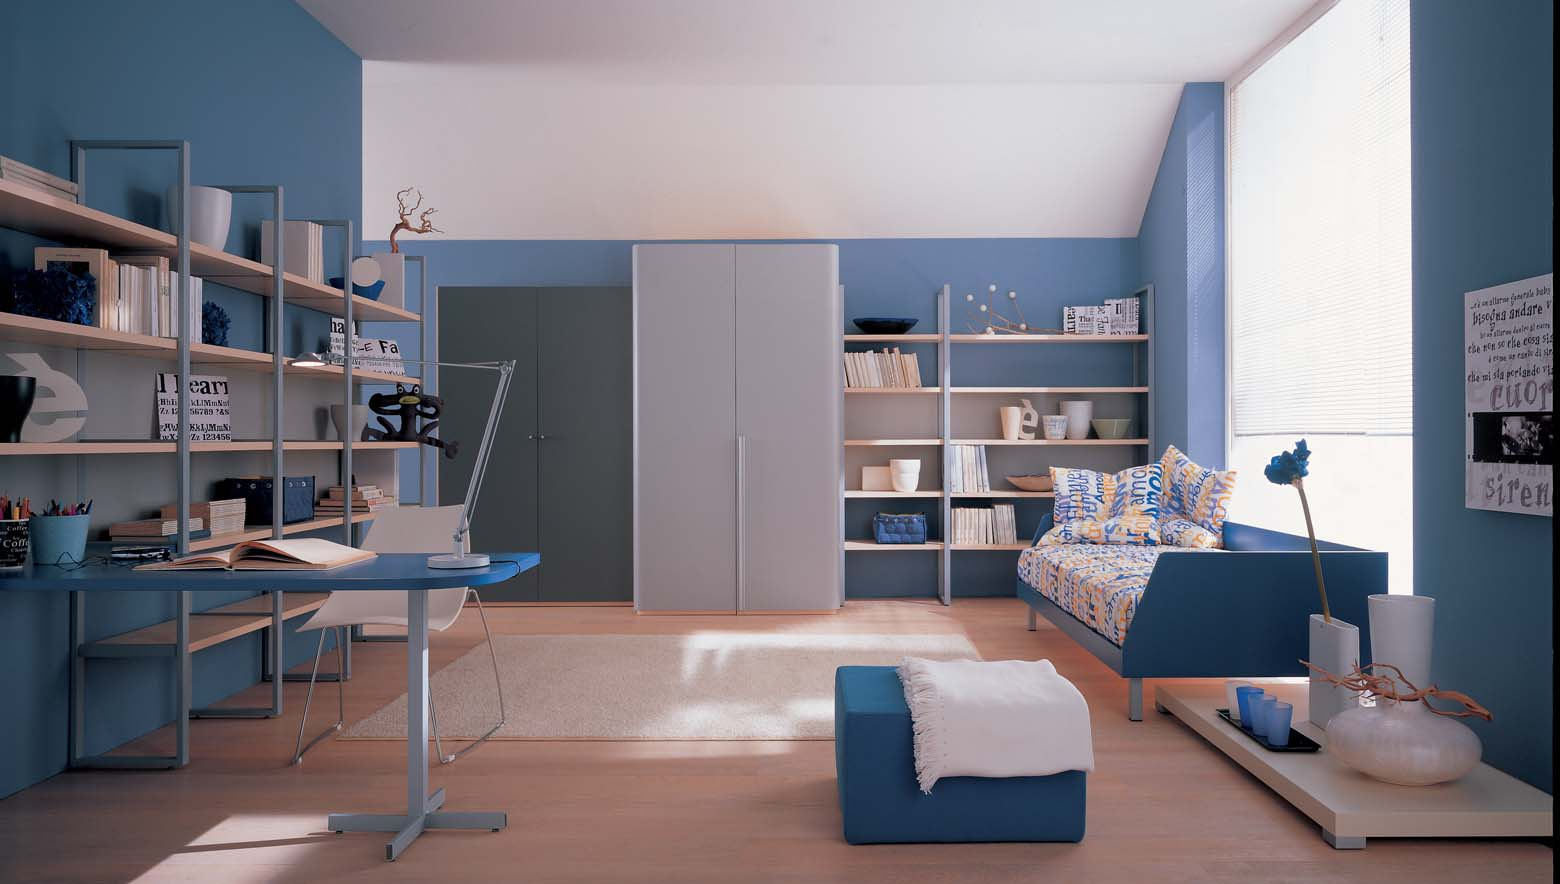 Interior exterior plan blue theme for kid s study room for Best place to study interior design